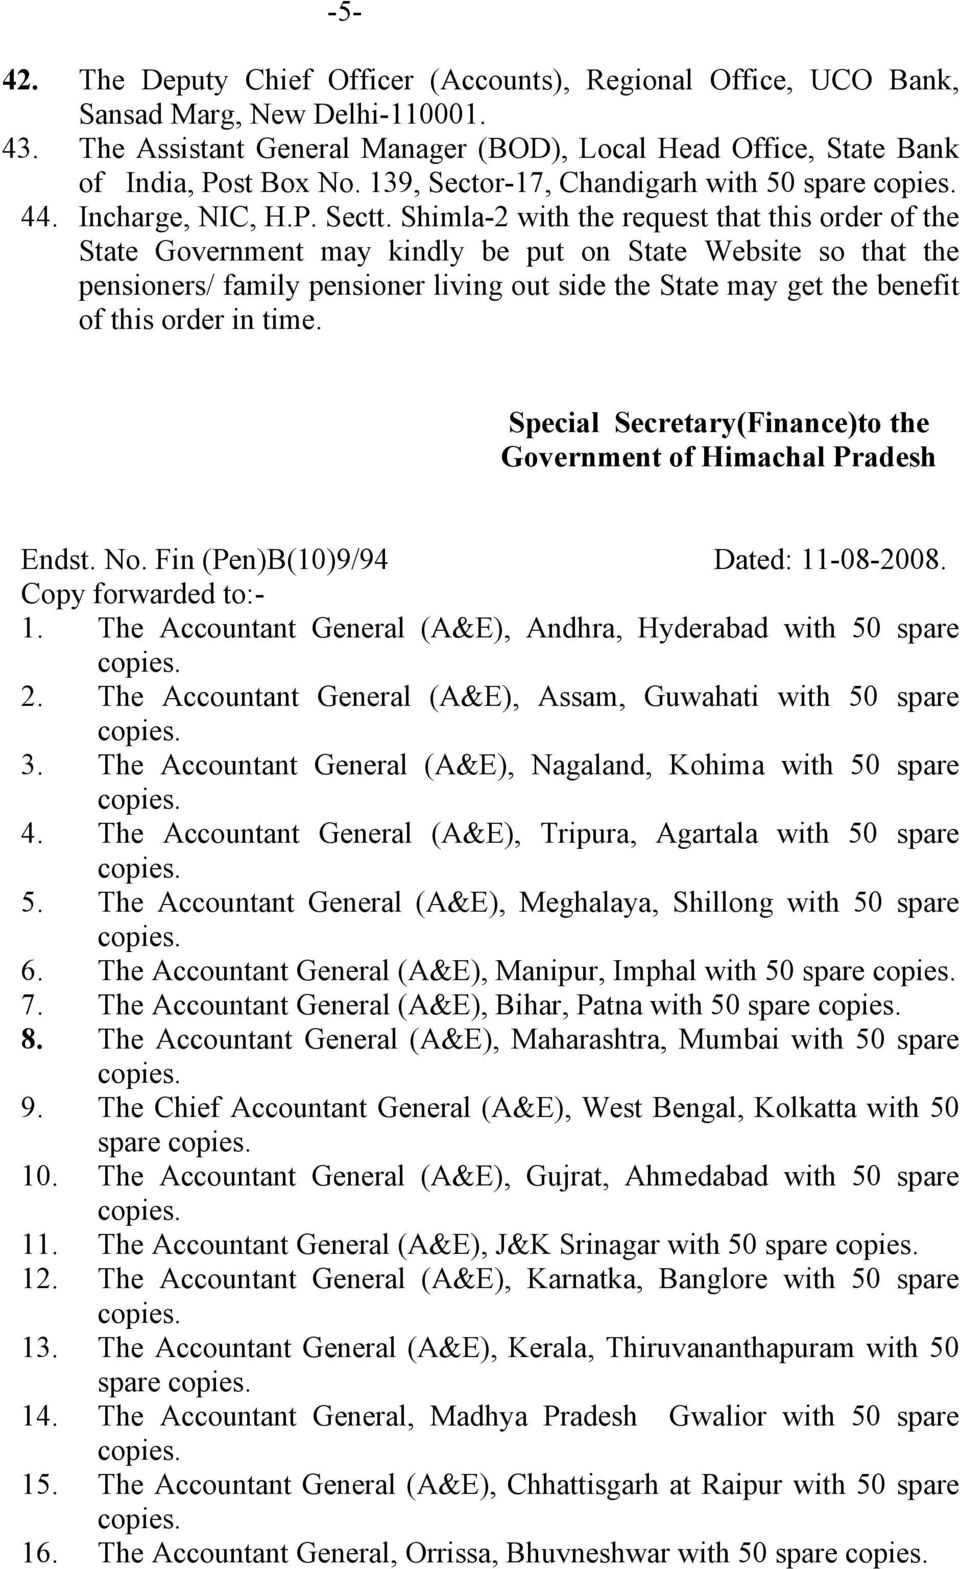 Shimla-2 with the request that this order of the State Government may kindly be put on State Website so that the pensioners/ family pensioner living out side the State may get the benefit of this